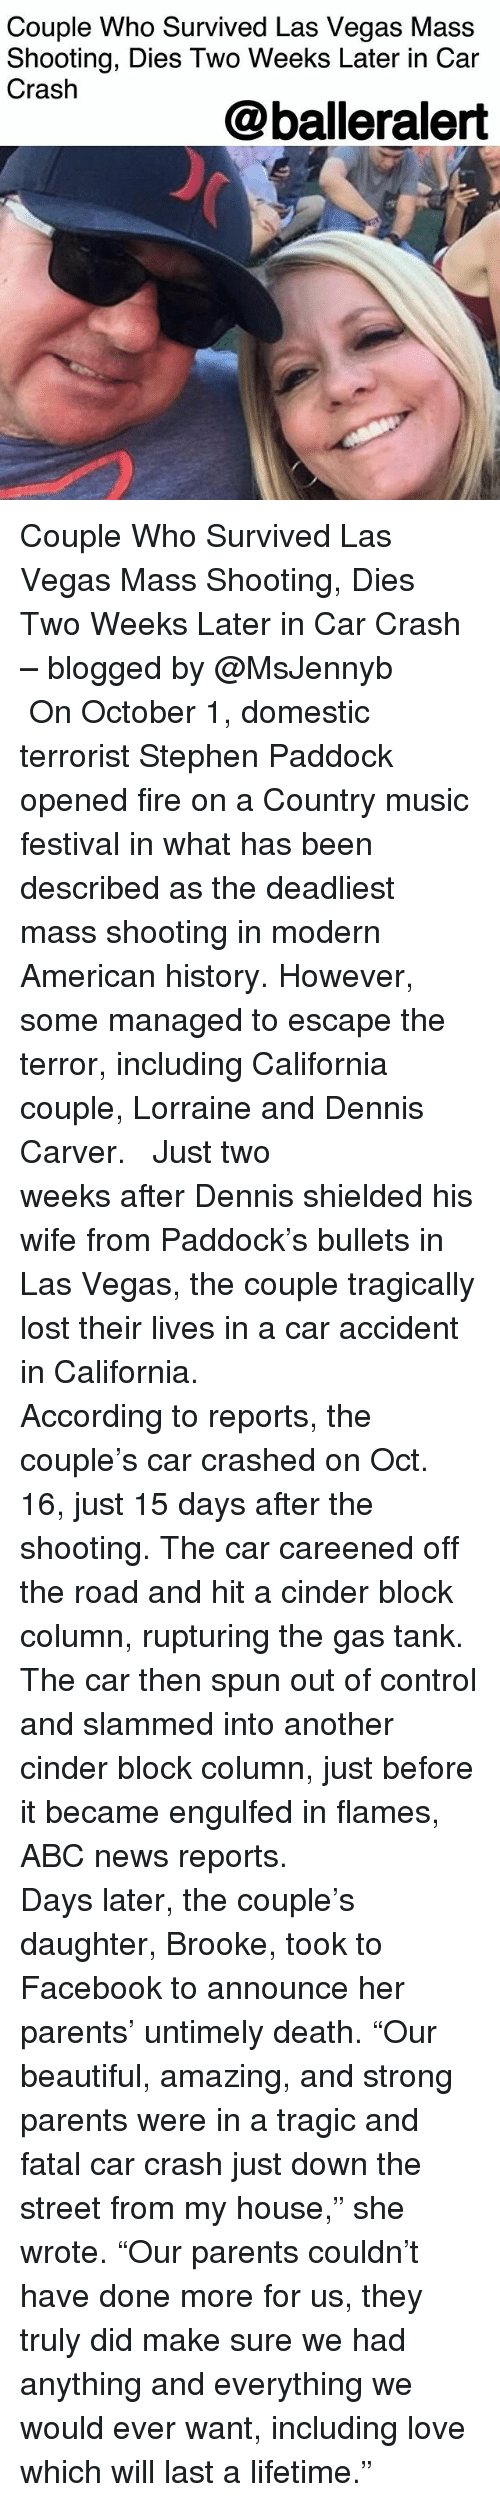 """Abc, Beautiful, and Facebook: Couple Who Survived Las Vegas Mass  Shooting, Dies Two Weeks Later in Car  Crash  @balleralert Couple Who Survived Las Vegas Mass Shooting, Dies Two Weeks Later in Car Crash – blogged by @MsJennyb ⠀⠀⠀⠀⠀⠀⠀ ⠀⠀⠀⠀⠀⠀⠀ On October 1, domestic terrorist Stephen Paddock opened fire on a Country music festival in what has been described as the deadliest mass shooting in modern American history. However, some managed to escape the terror, including California couple, Lorraine and Dennis Carver. ⠀⠀⠀⠀⠀⠀⠀ ⠀⠀⠀⠀⠀⠀⠀ Just two weeks after Dennis shielded his wife from Paddock's bullets in Las Vegas, the couple tragically lost their lives in a car accident in California. ⠀⠀⠀⠀⠀⠀⠀ ⠀⠀⠀⠀⠀⠀⠀ According to reports, the couple's car crashed on Oct. 16, just 15 days after the shooting. The car careened off the road and hit a cinder block column, rupturing the gas tank. The car then spun out of control and slammed into another cinder block column, just before it became engulfed in flames, ABC news reports. ⠀⠀⠀⠀⠀⠀⠀ ⠀⠀⠀⠀⠀⠀⠀ Days later, the couple's daughter, Brooke, took to Facebook to announce her parents' untimely death. """"Our beautiful, amazing, and strong parents were in a tragic and fatal car crash just down the street from my house,"""" she wrote. """"Our parents couldn't have done more for us, they truly did make sure we had anything and everything we would ever want, including love which will last a lifetime."""""""